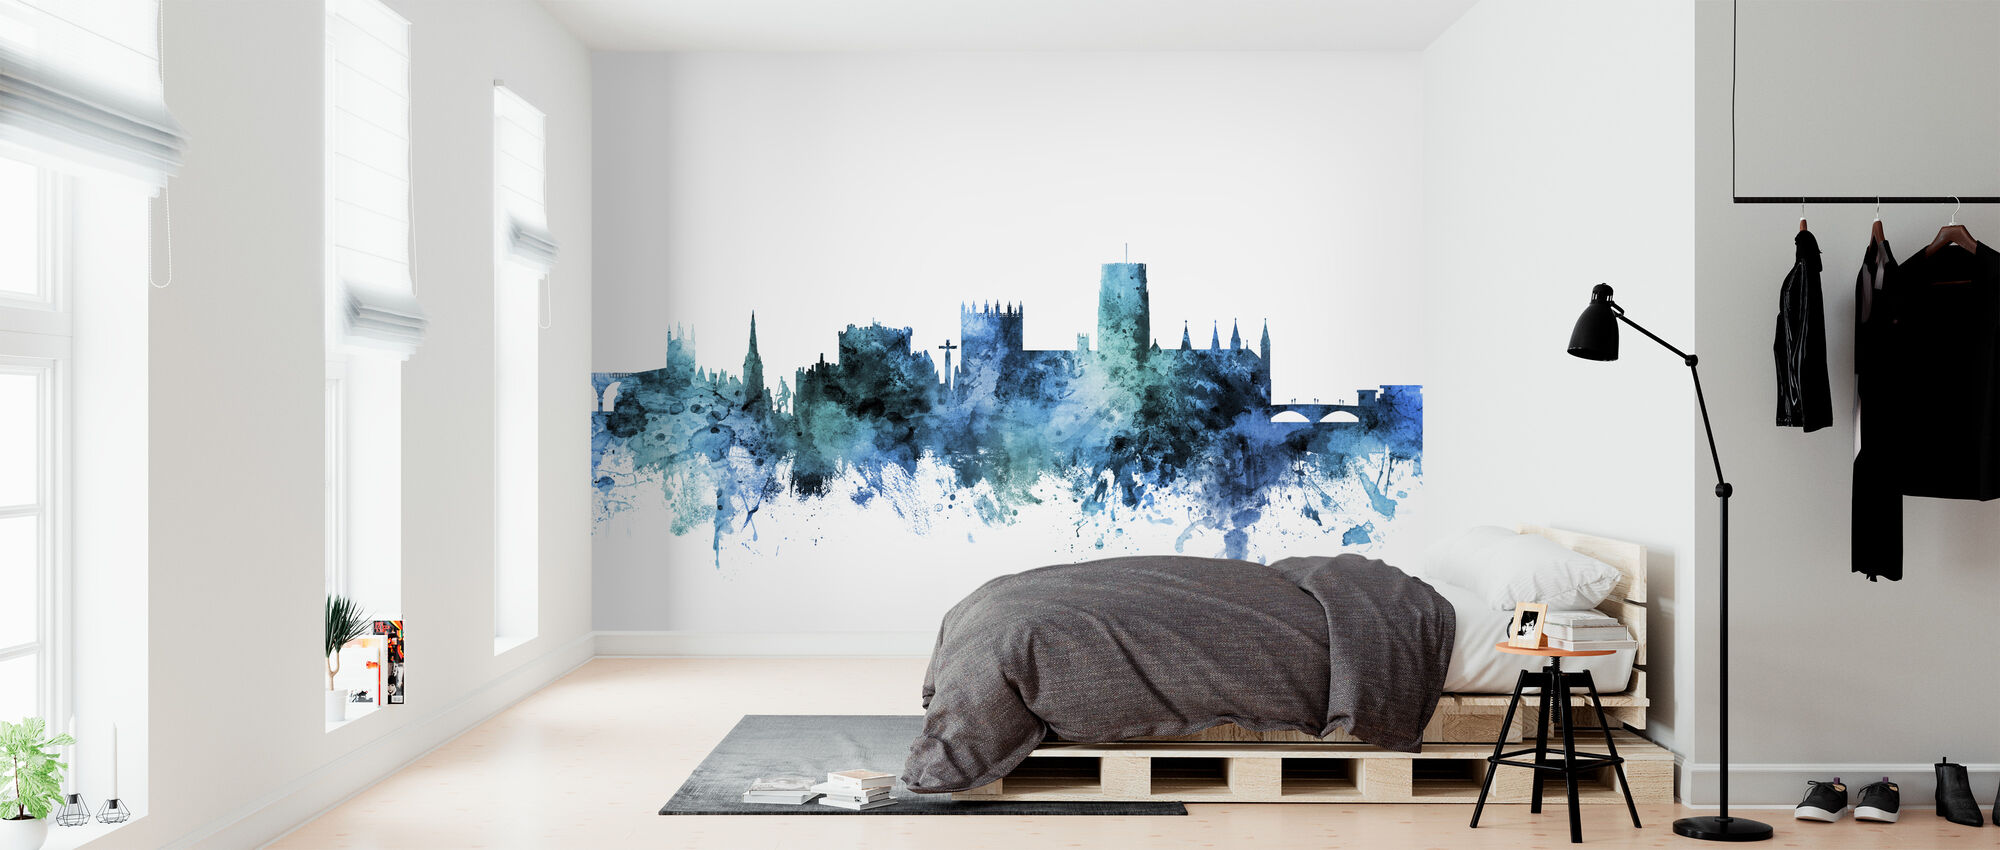 Durham England Skyline Cityscape - Wallpaper - Bedroom